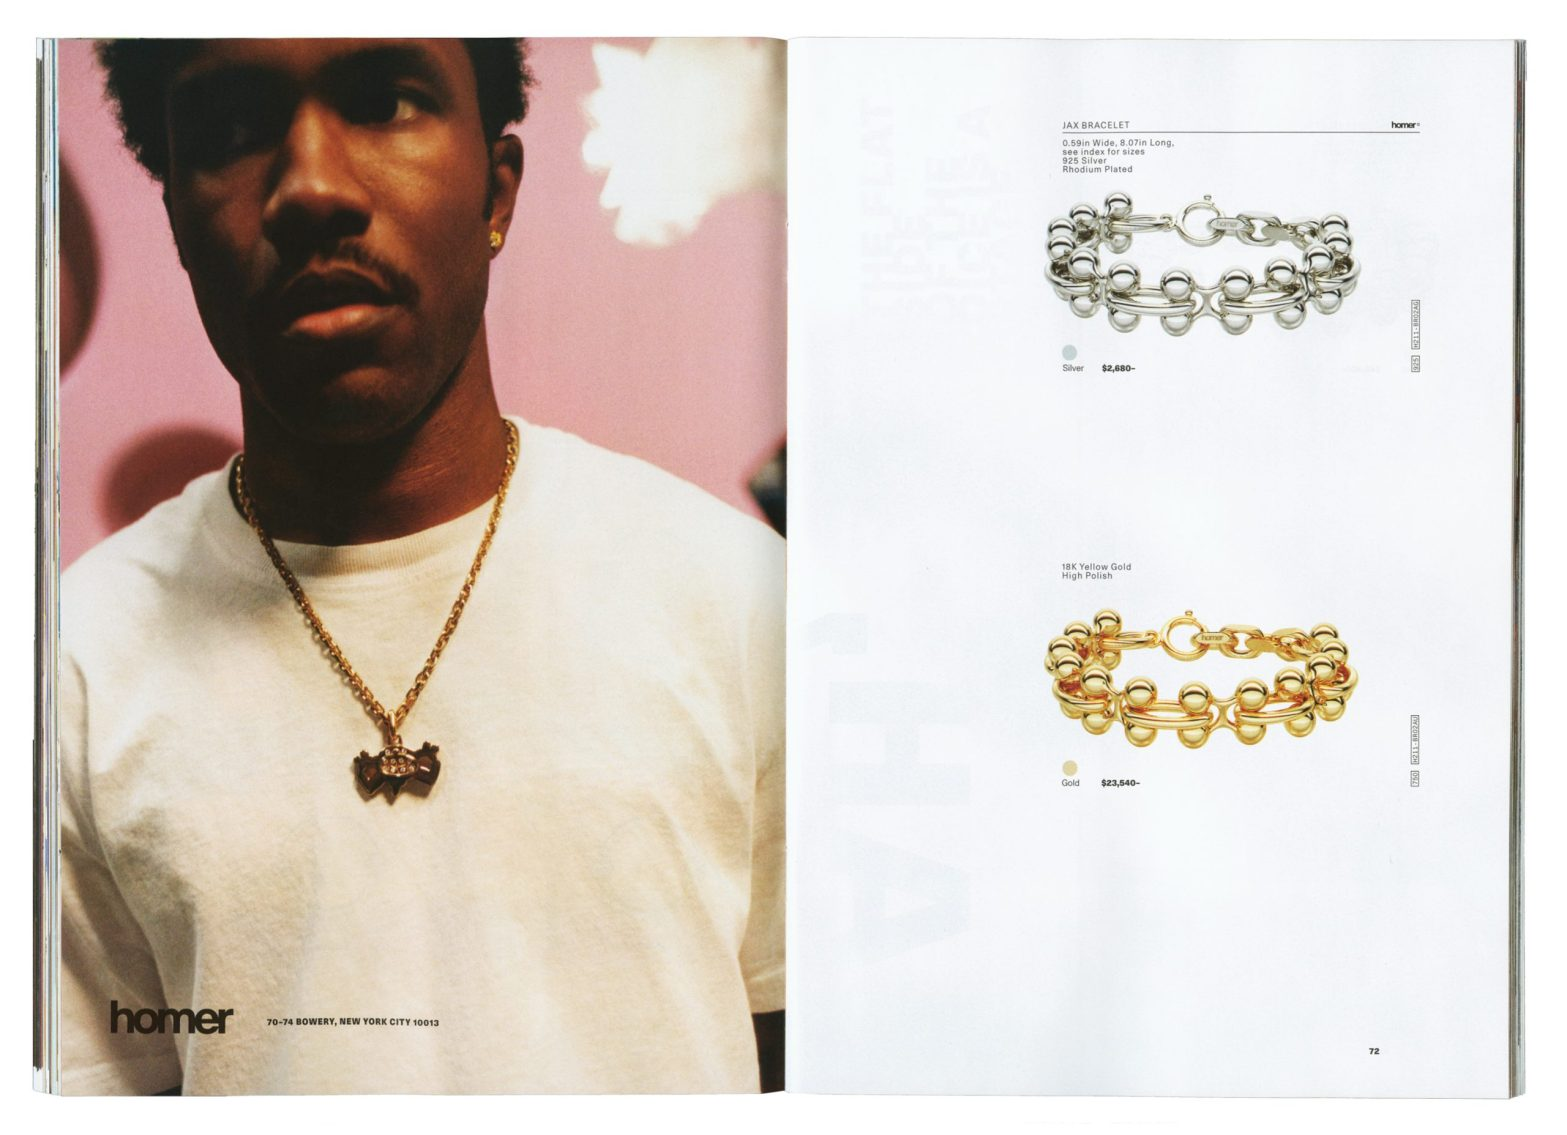 Thumbnail for Because Music Wasn't Enough, Frank Ocean is Now in The Jewelry Business With New Brand Homer